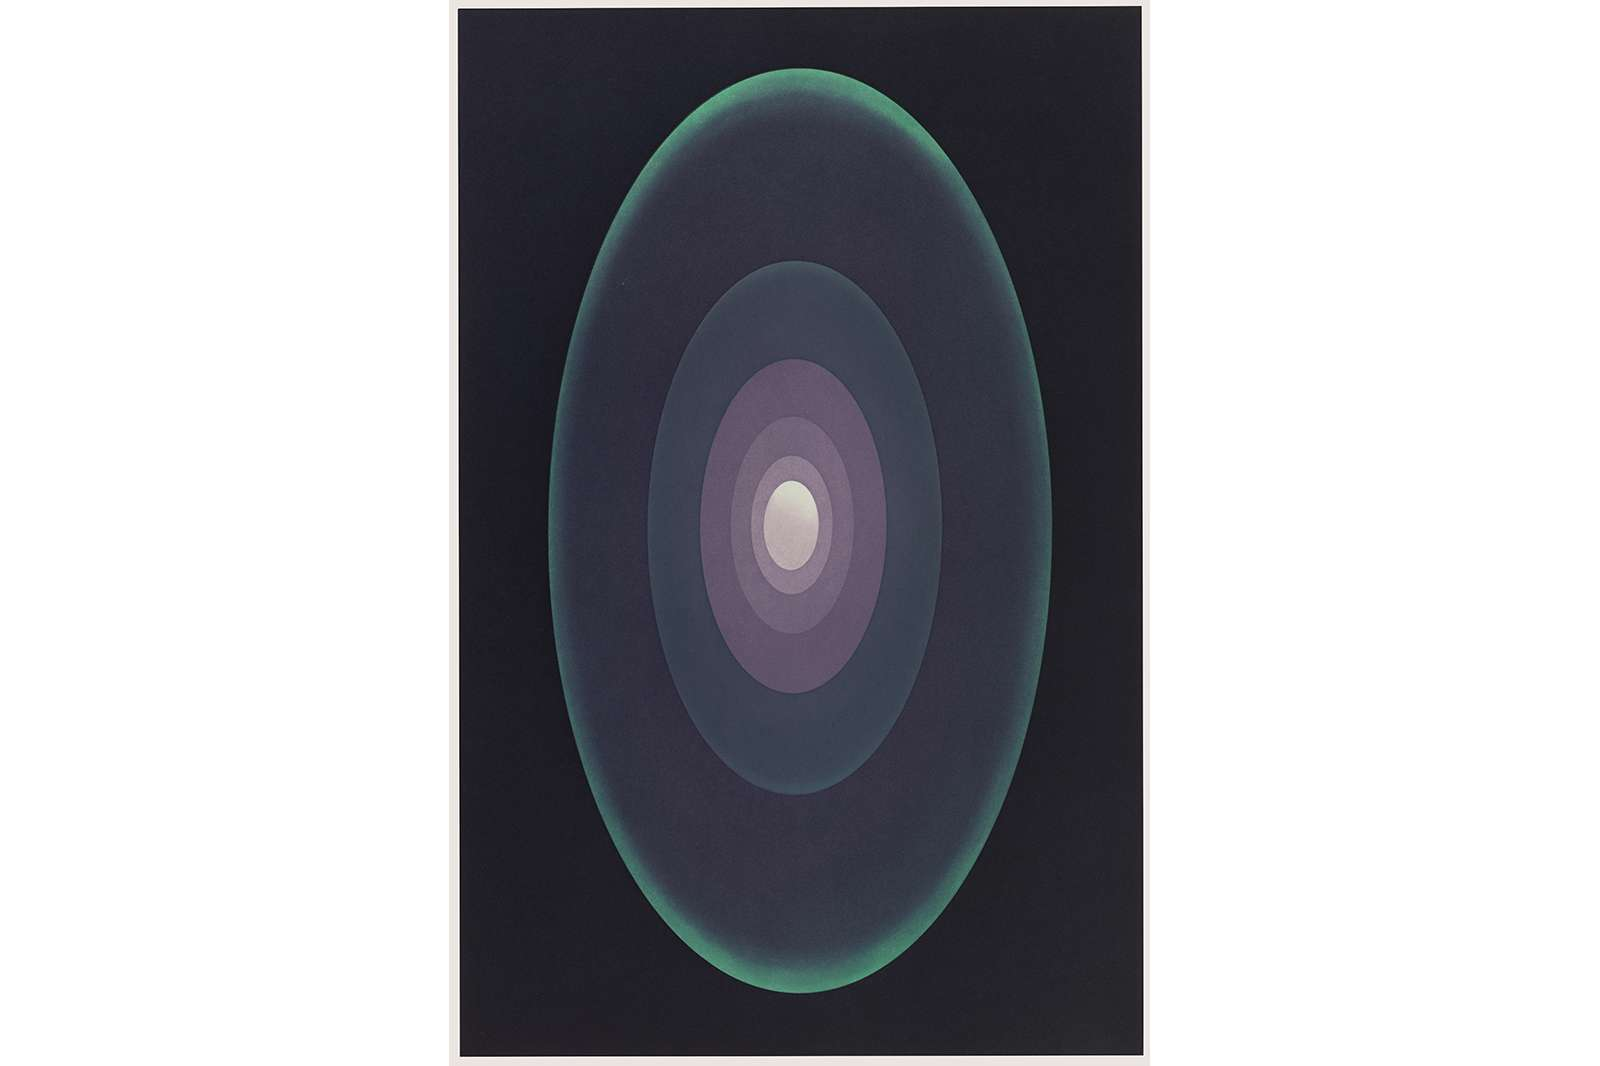 James Turrell, Meeting, 1989-90. Aquatint, 42 7/16 x 29 13/16 inches. Edition of 30.